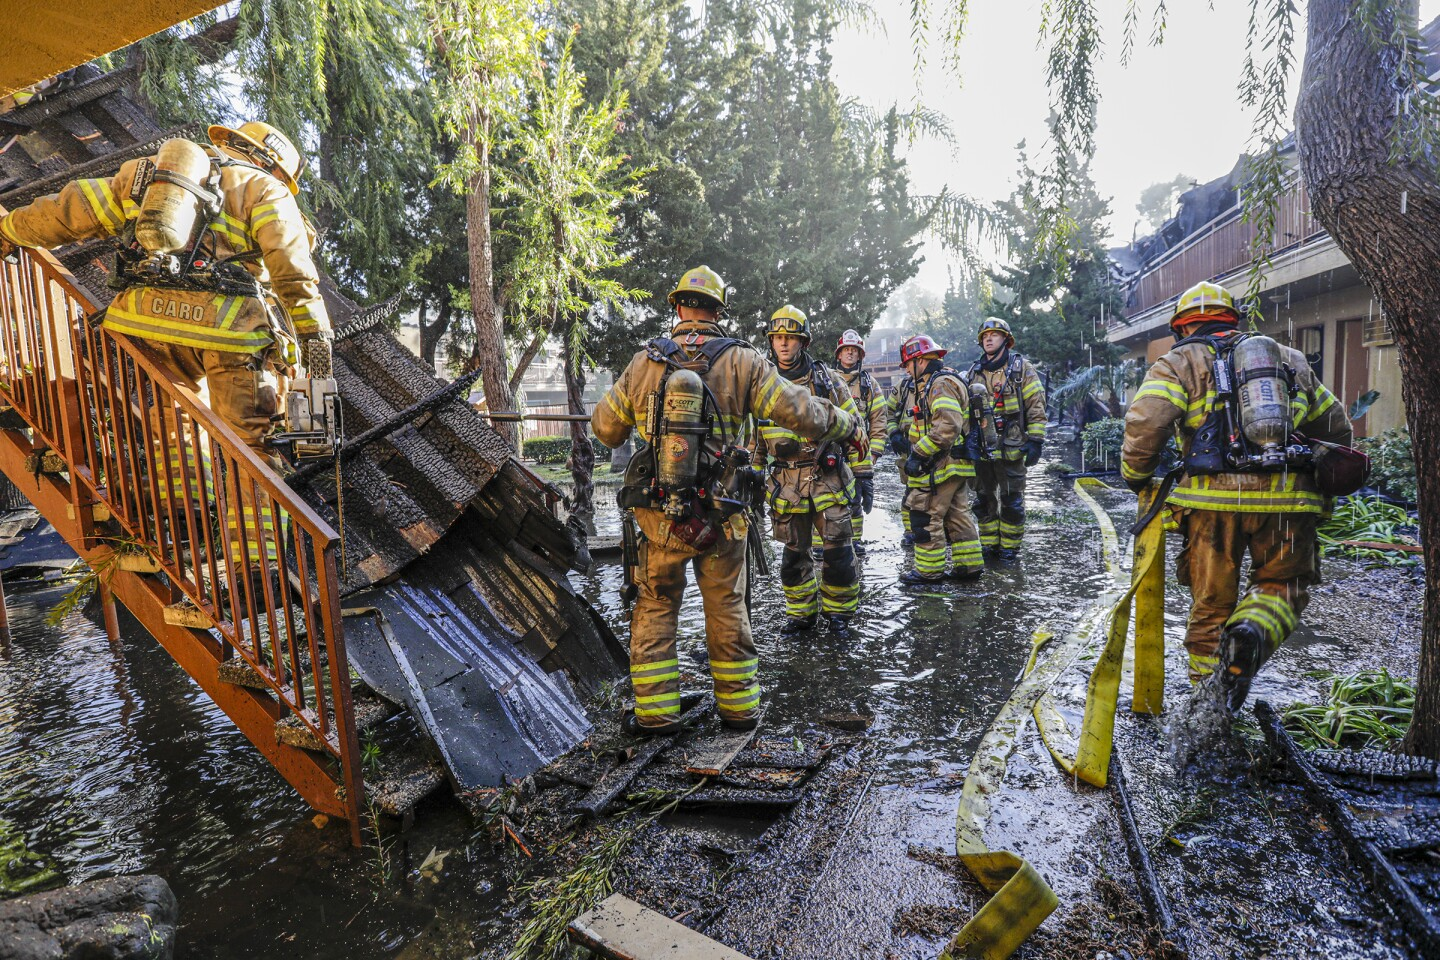 TUSTIN, CA - FEBRUARY 12 , 2020 - A five-alarm fire that caused the roof of a building in a two-story apartment complex in Tustin to collapse today left two residents injured, and firefighters were working to douse hot spots and determine if anyone was unaccounted for. The fire was first reported at 3:01 a.m. at 15751 Williams Street, near McFadden Avenue, according to the Orange County Fire Authority. (Irfan Khan / Los Angeles Times)